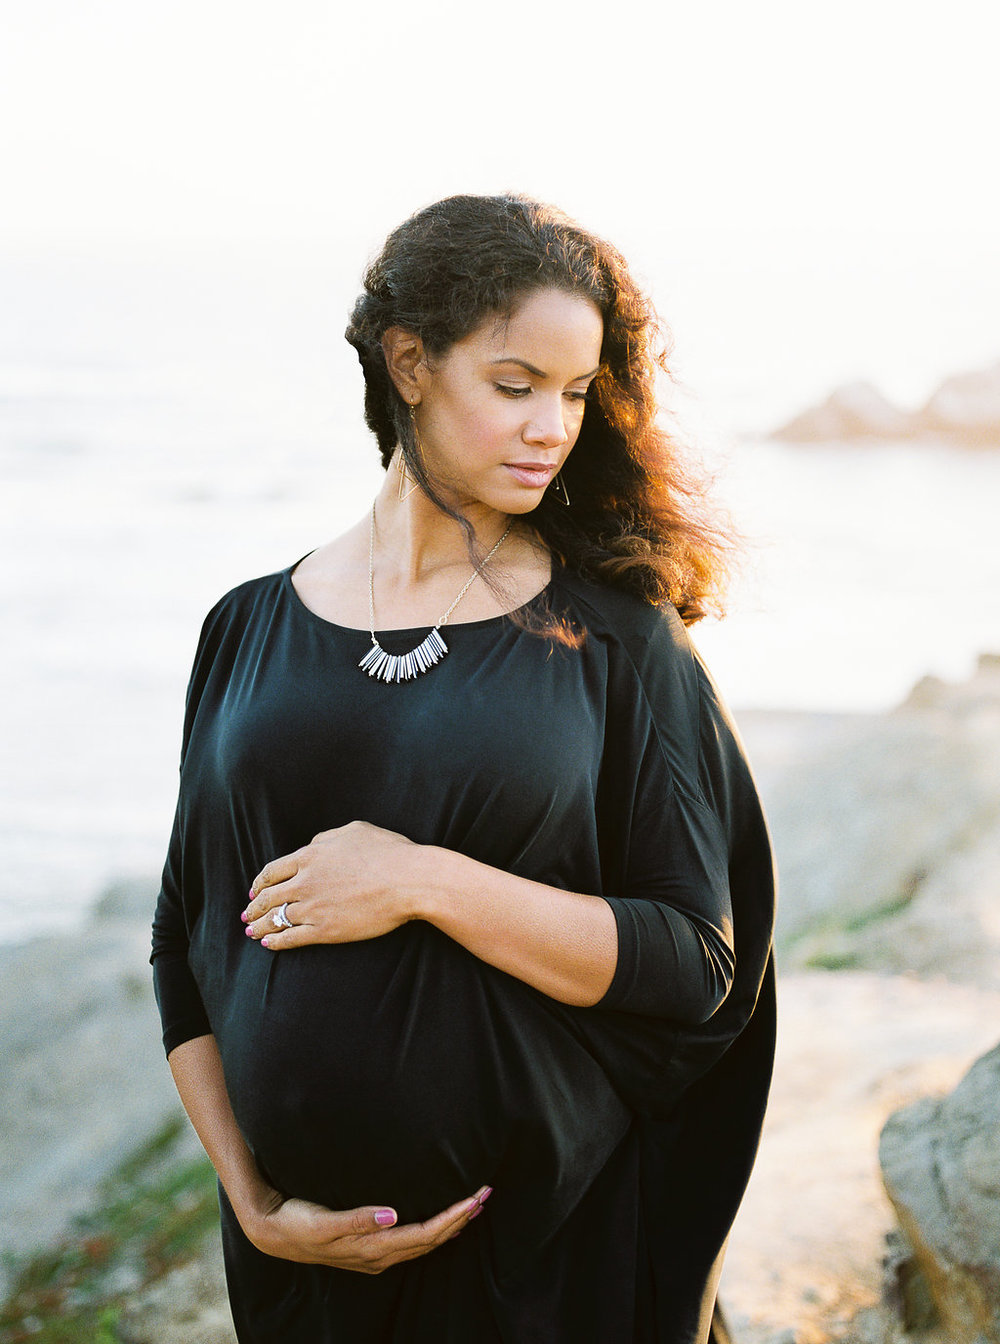 San Fransisco wedding photographer Kibogo Photographer | maternity photos in SF 8.JPG